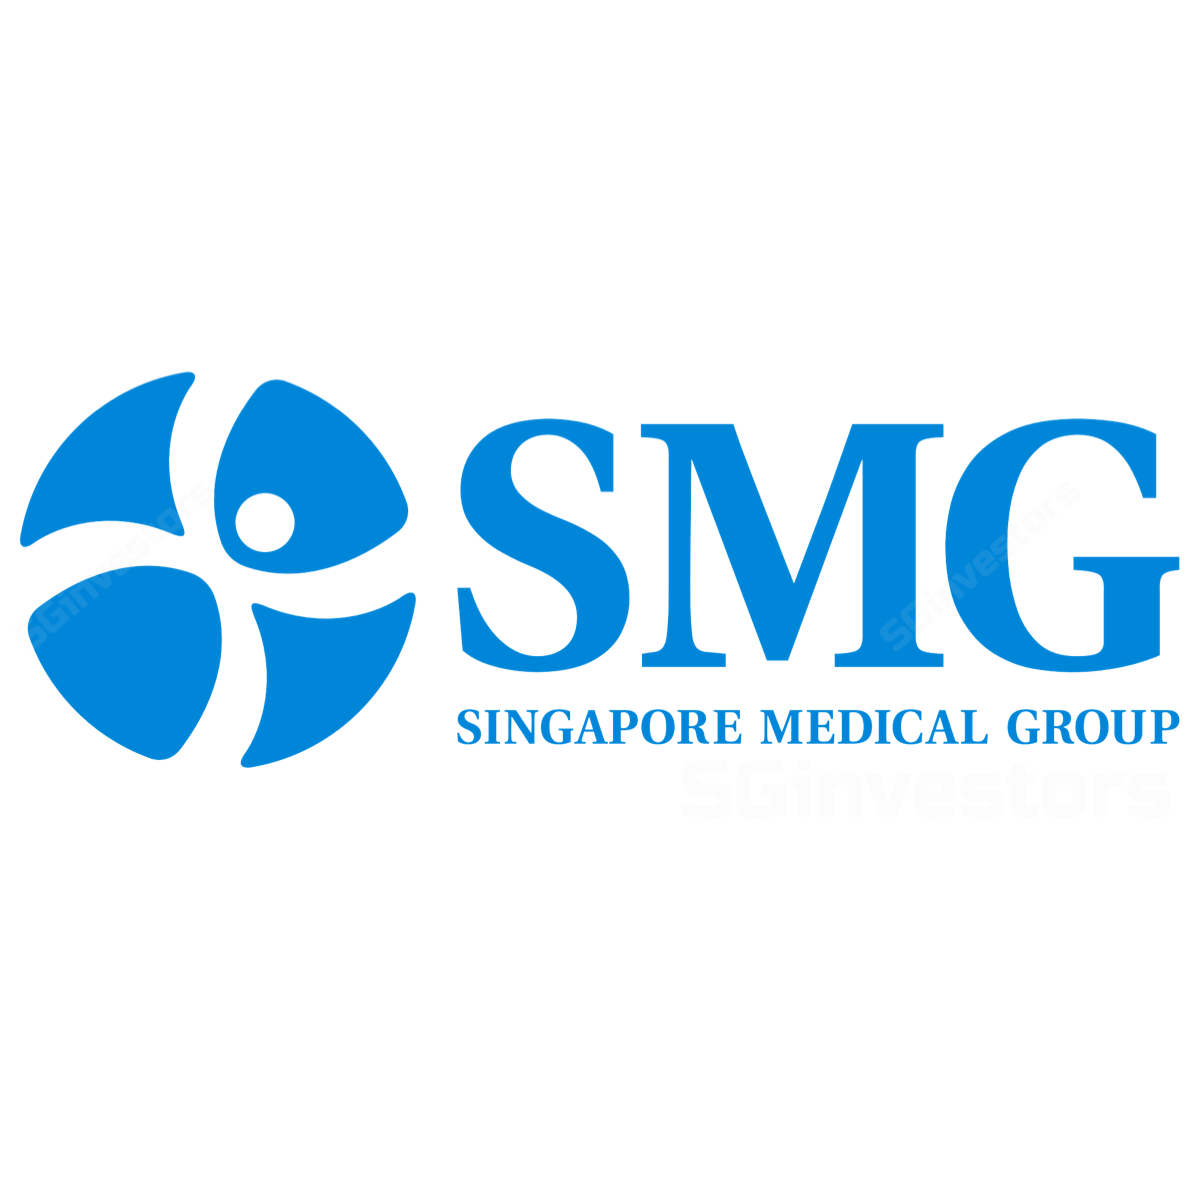 Singapore Medical Group (SMG SP) - UOB Kay Hian 2018-01-26: A Premier Healthcare Platform From Cradle To Grave